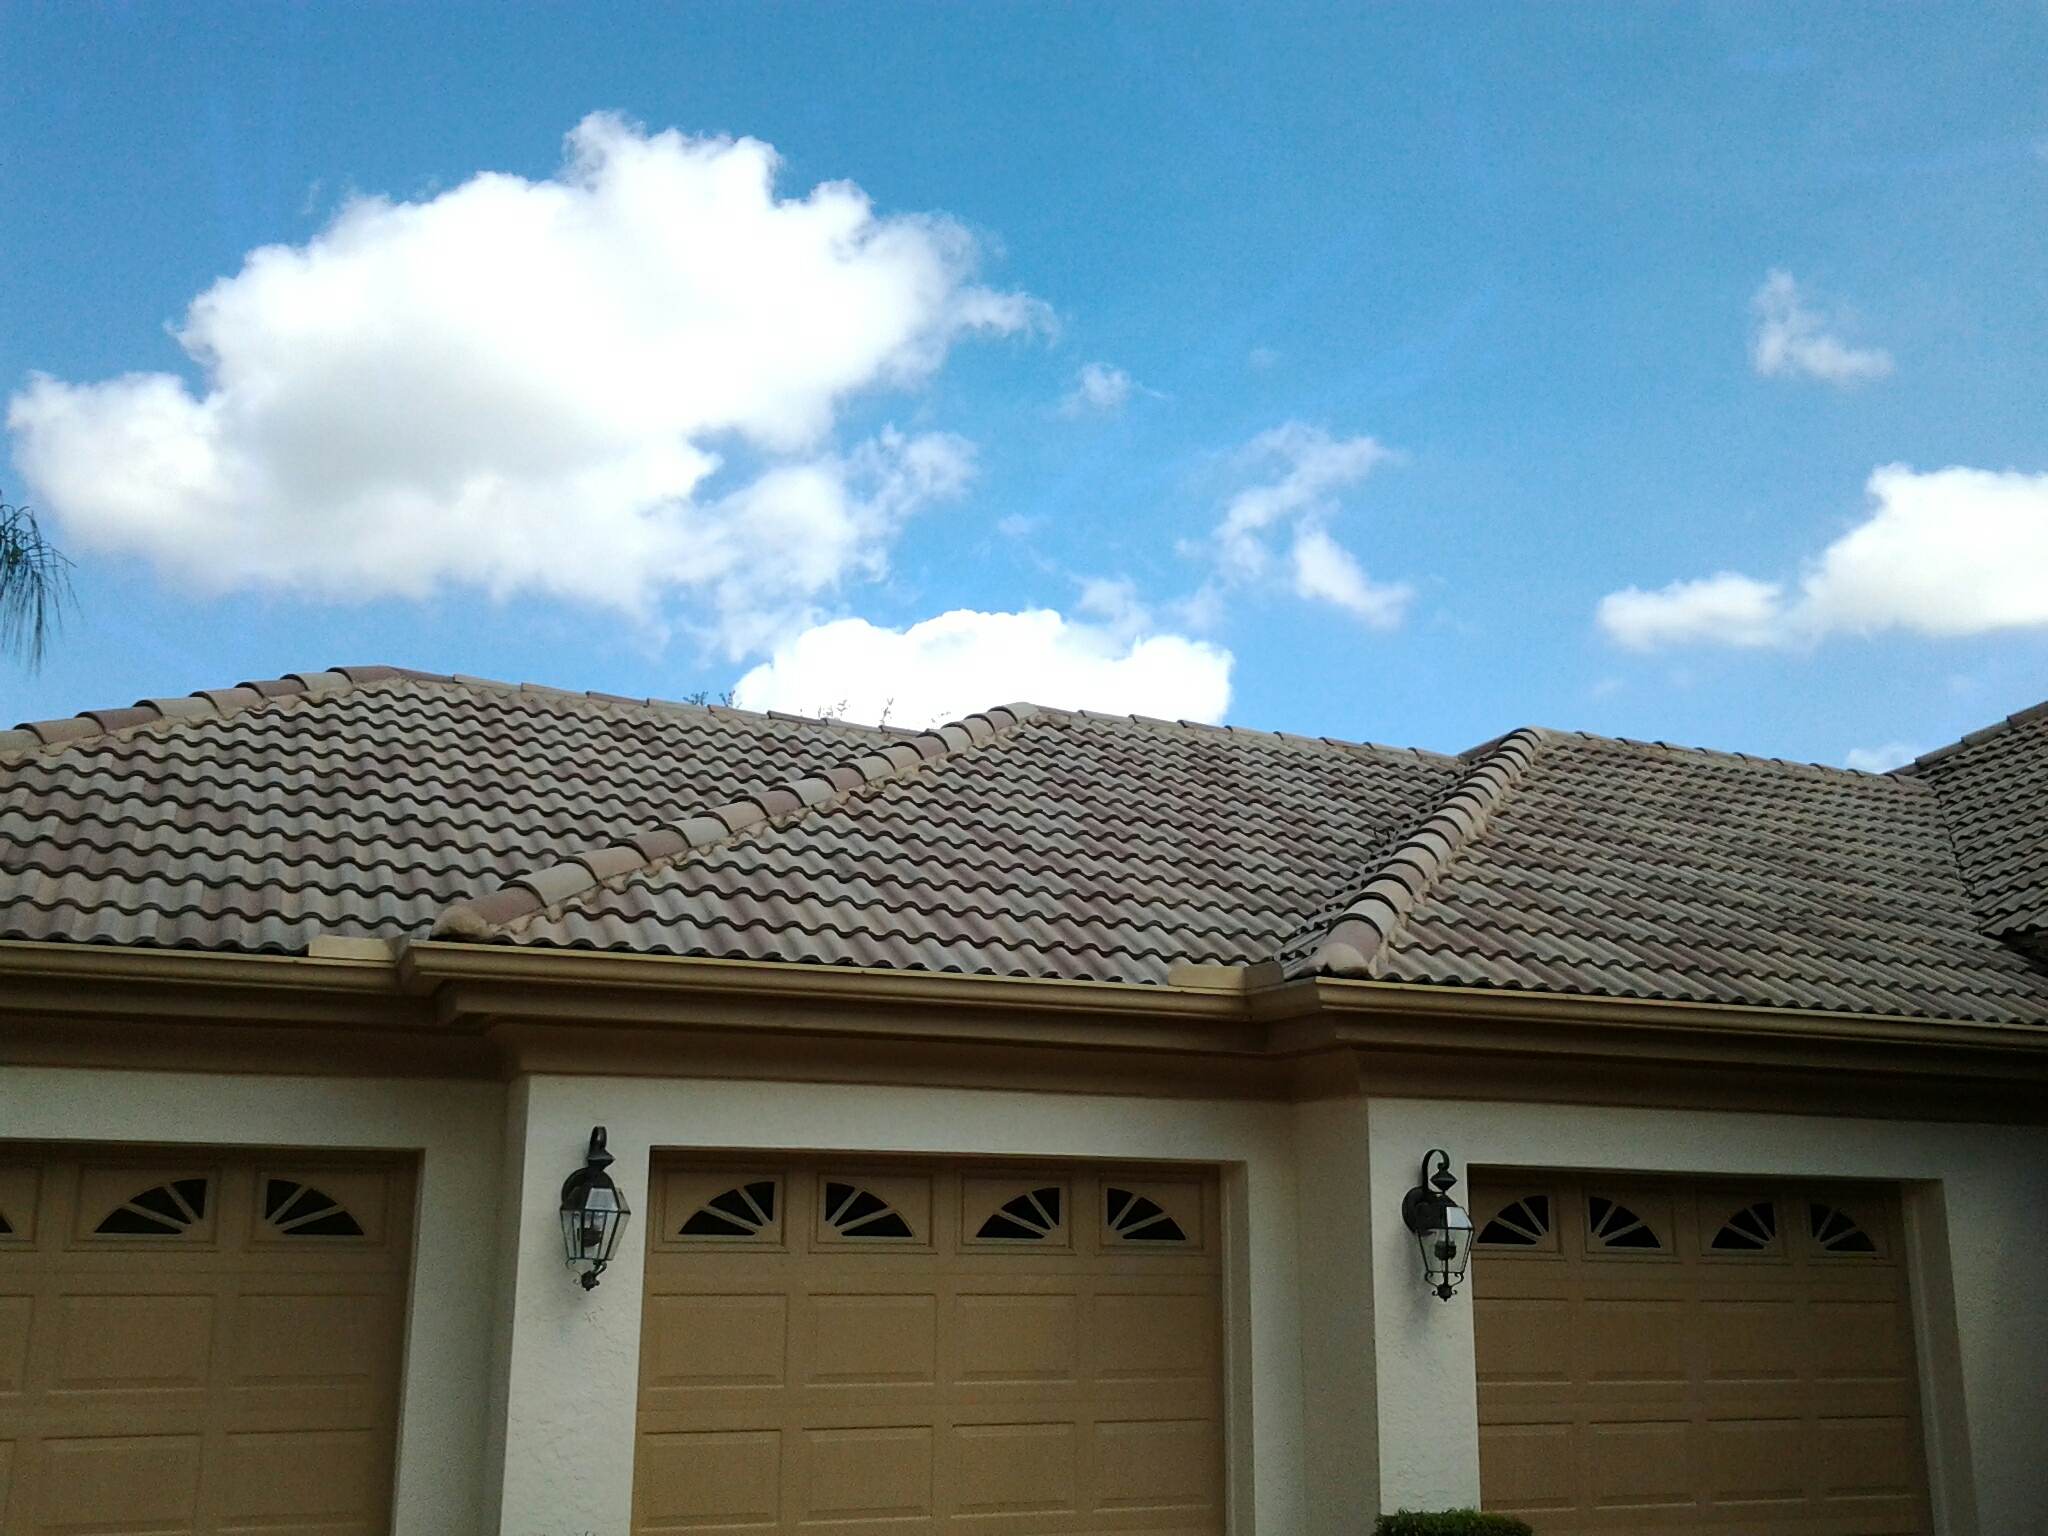 West Palm Beach, FL - Roof a cide in Palm Beach Duane & Gary Earl W.Johnston Roofing Roof A Cide takes 100 % control of mold, mildew, fungus and algae taking over your roof.